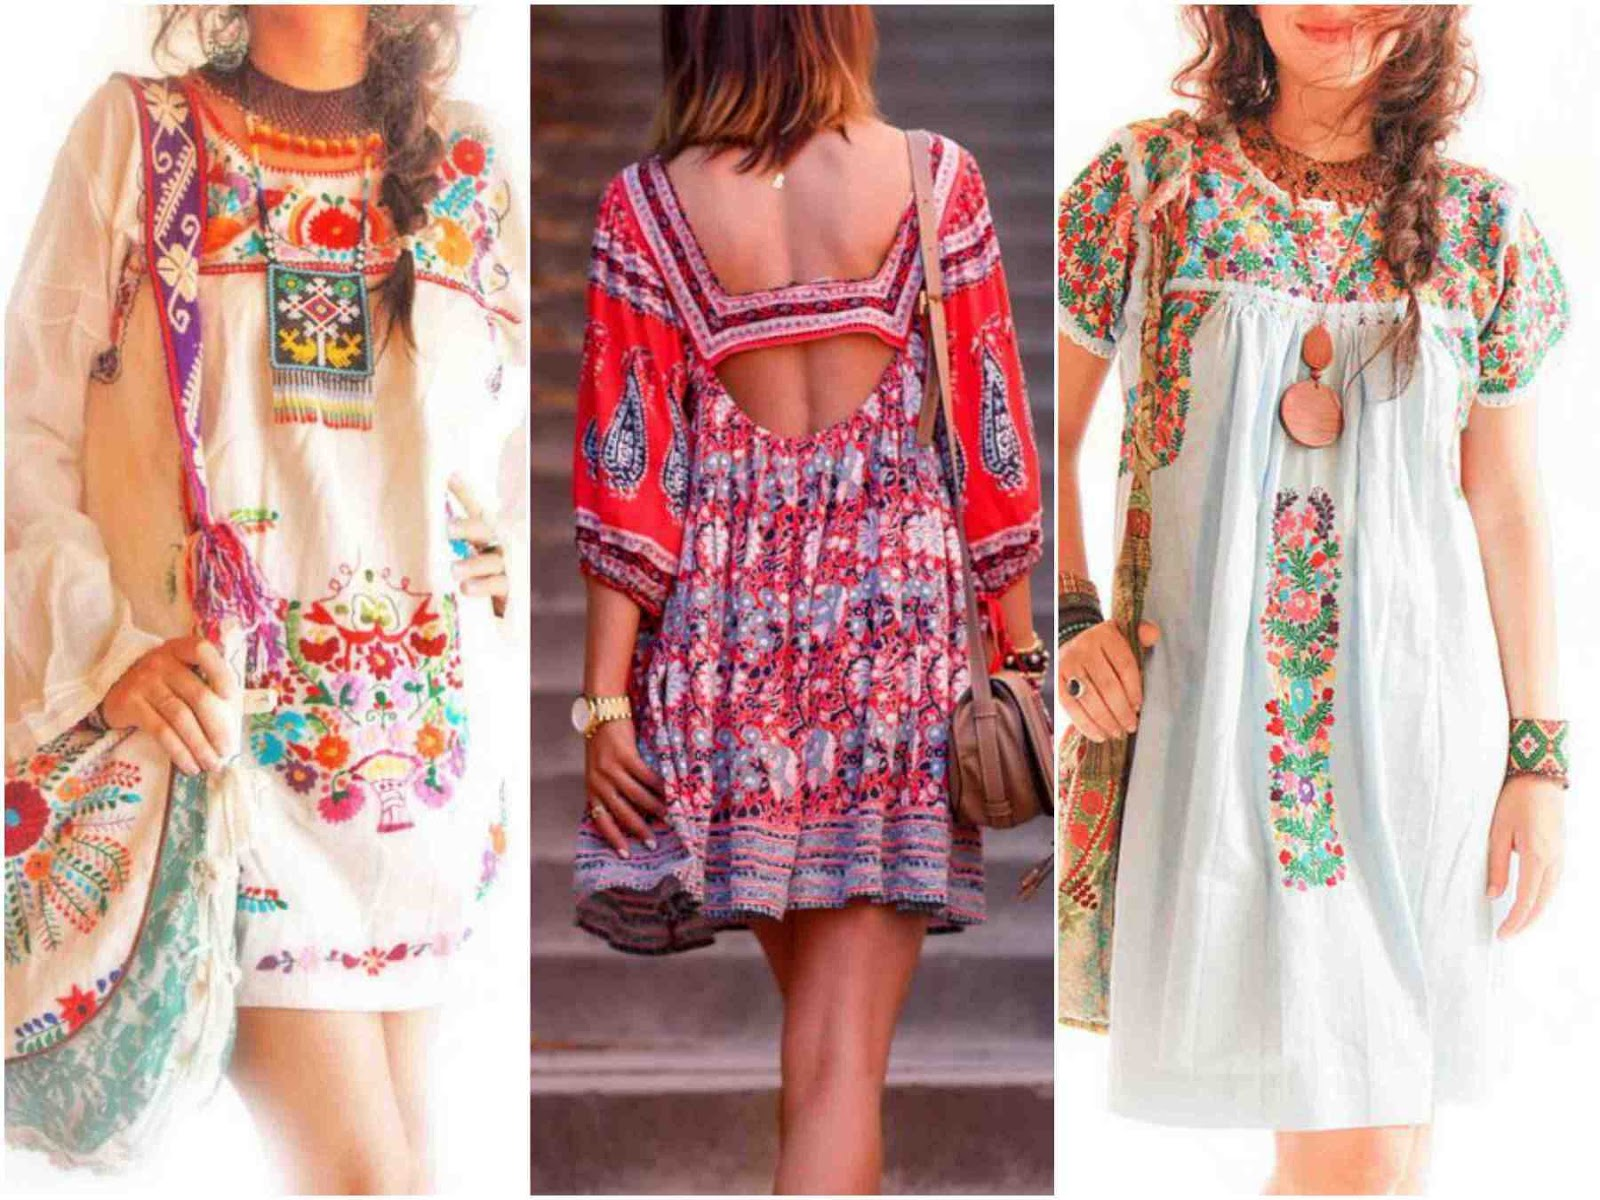 The Bohemian Clothing Most Crafty Its Look Combines Ethnic And Romance